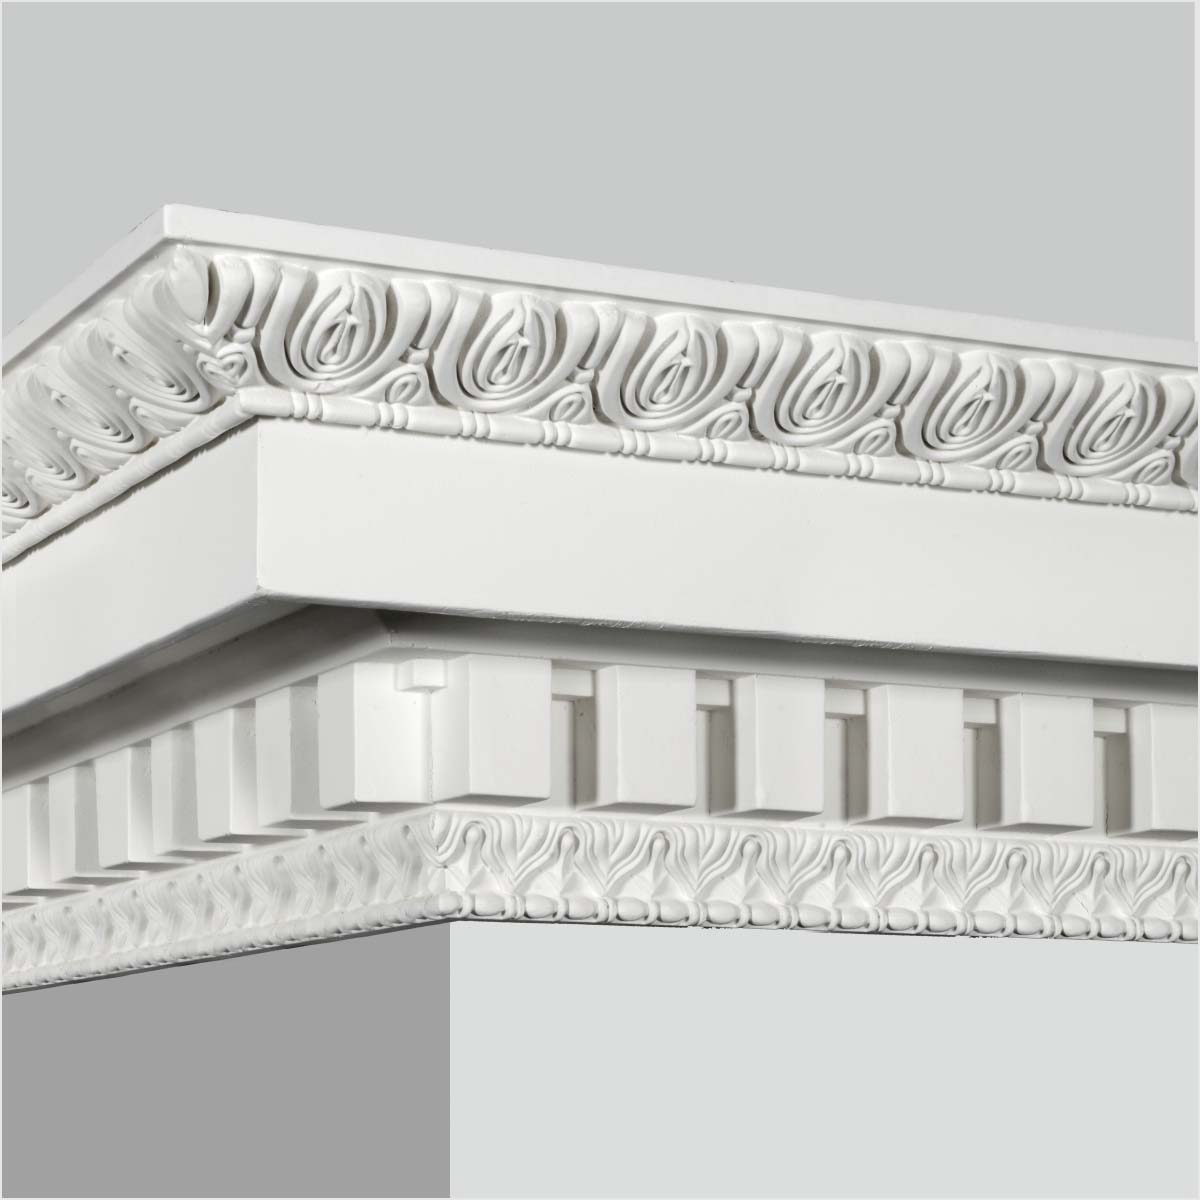 PU architectural ornament crown molding